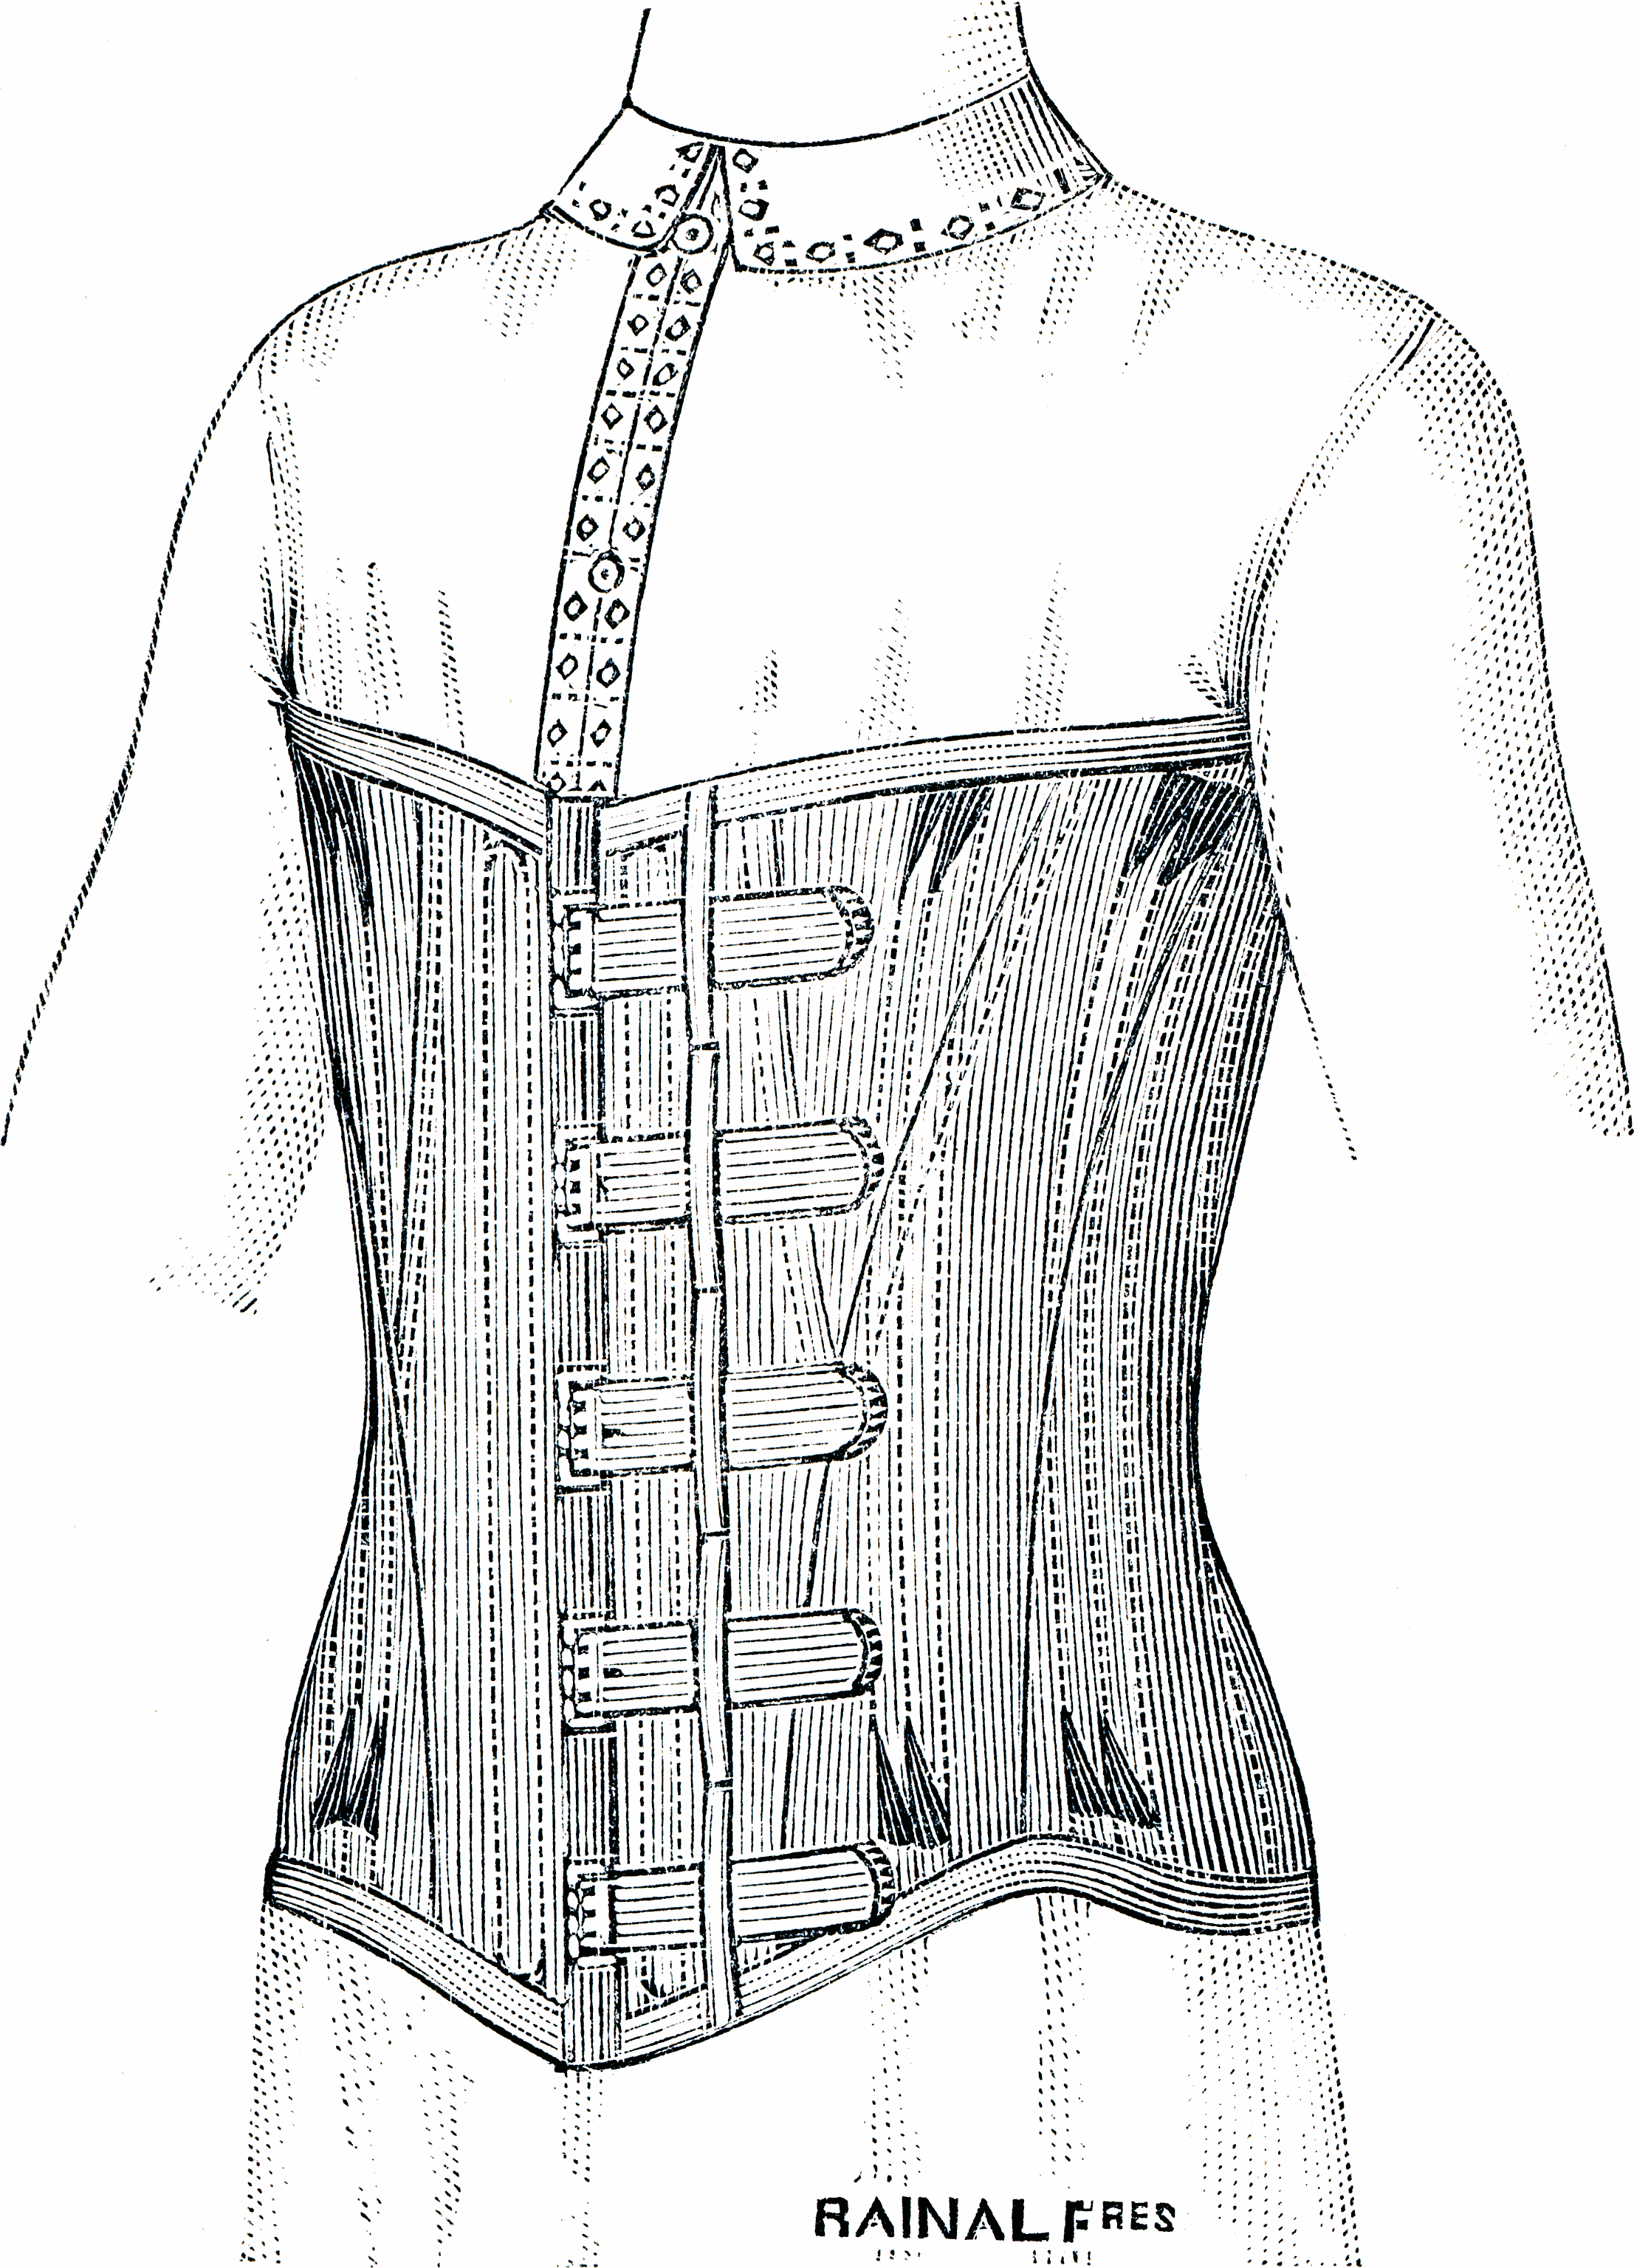 A corset for gentlemen. Date unknown, but guessing early or mid 19th century. Source: Wikimedia Commons.